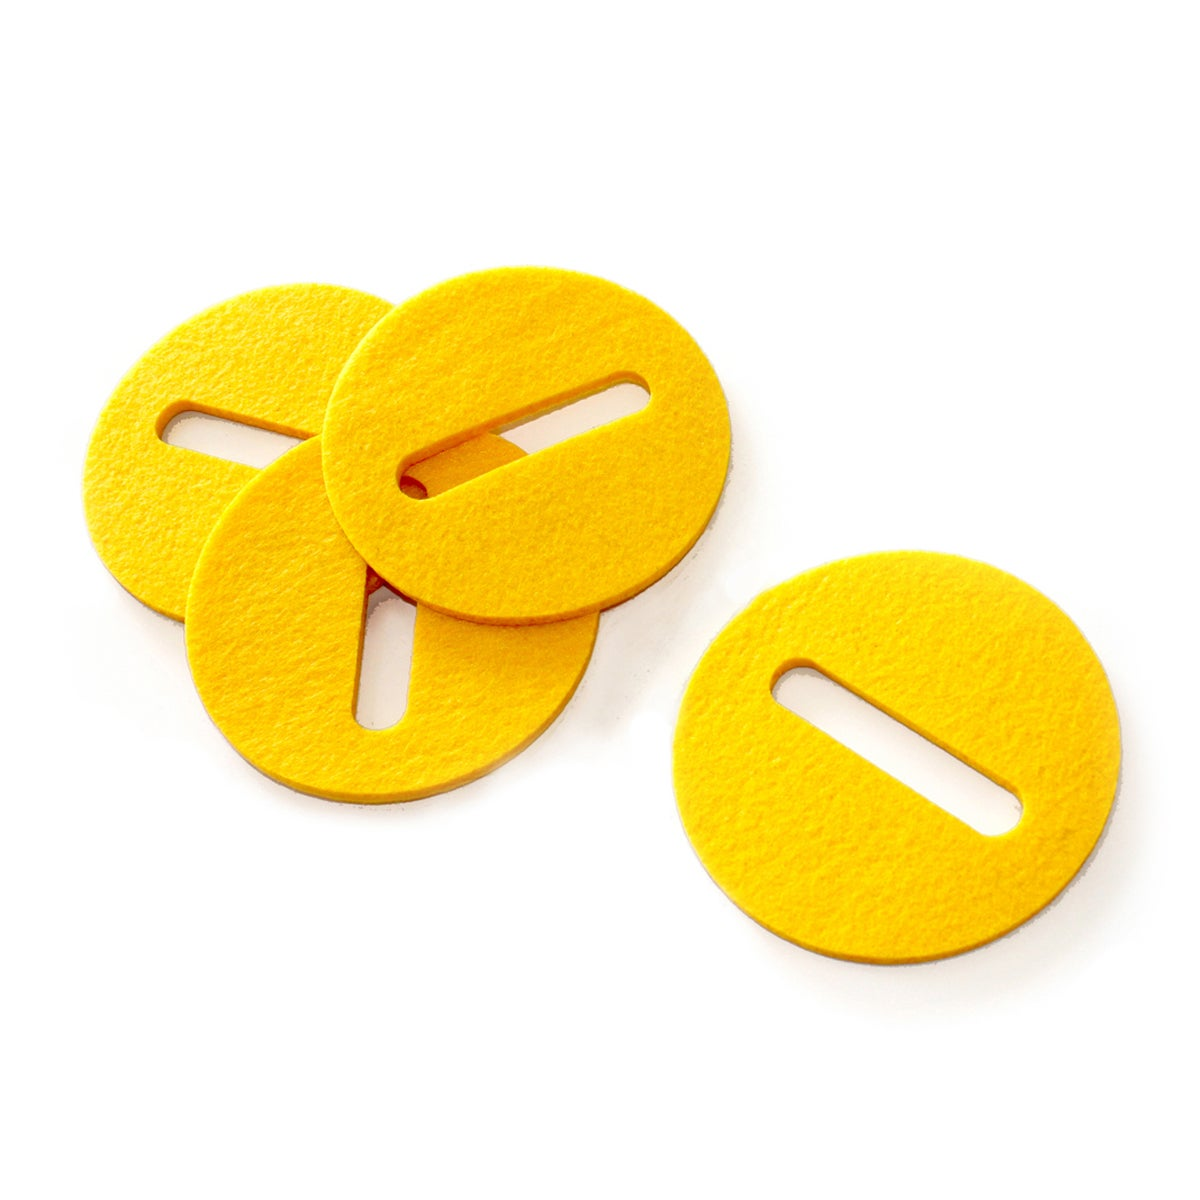 Image of Cupa-Stay Coasters Yellow